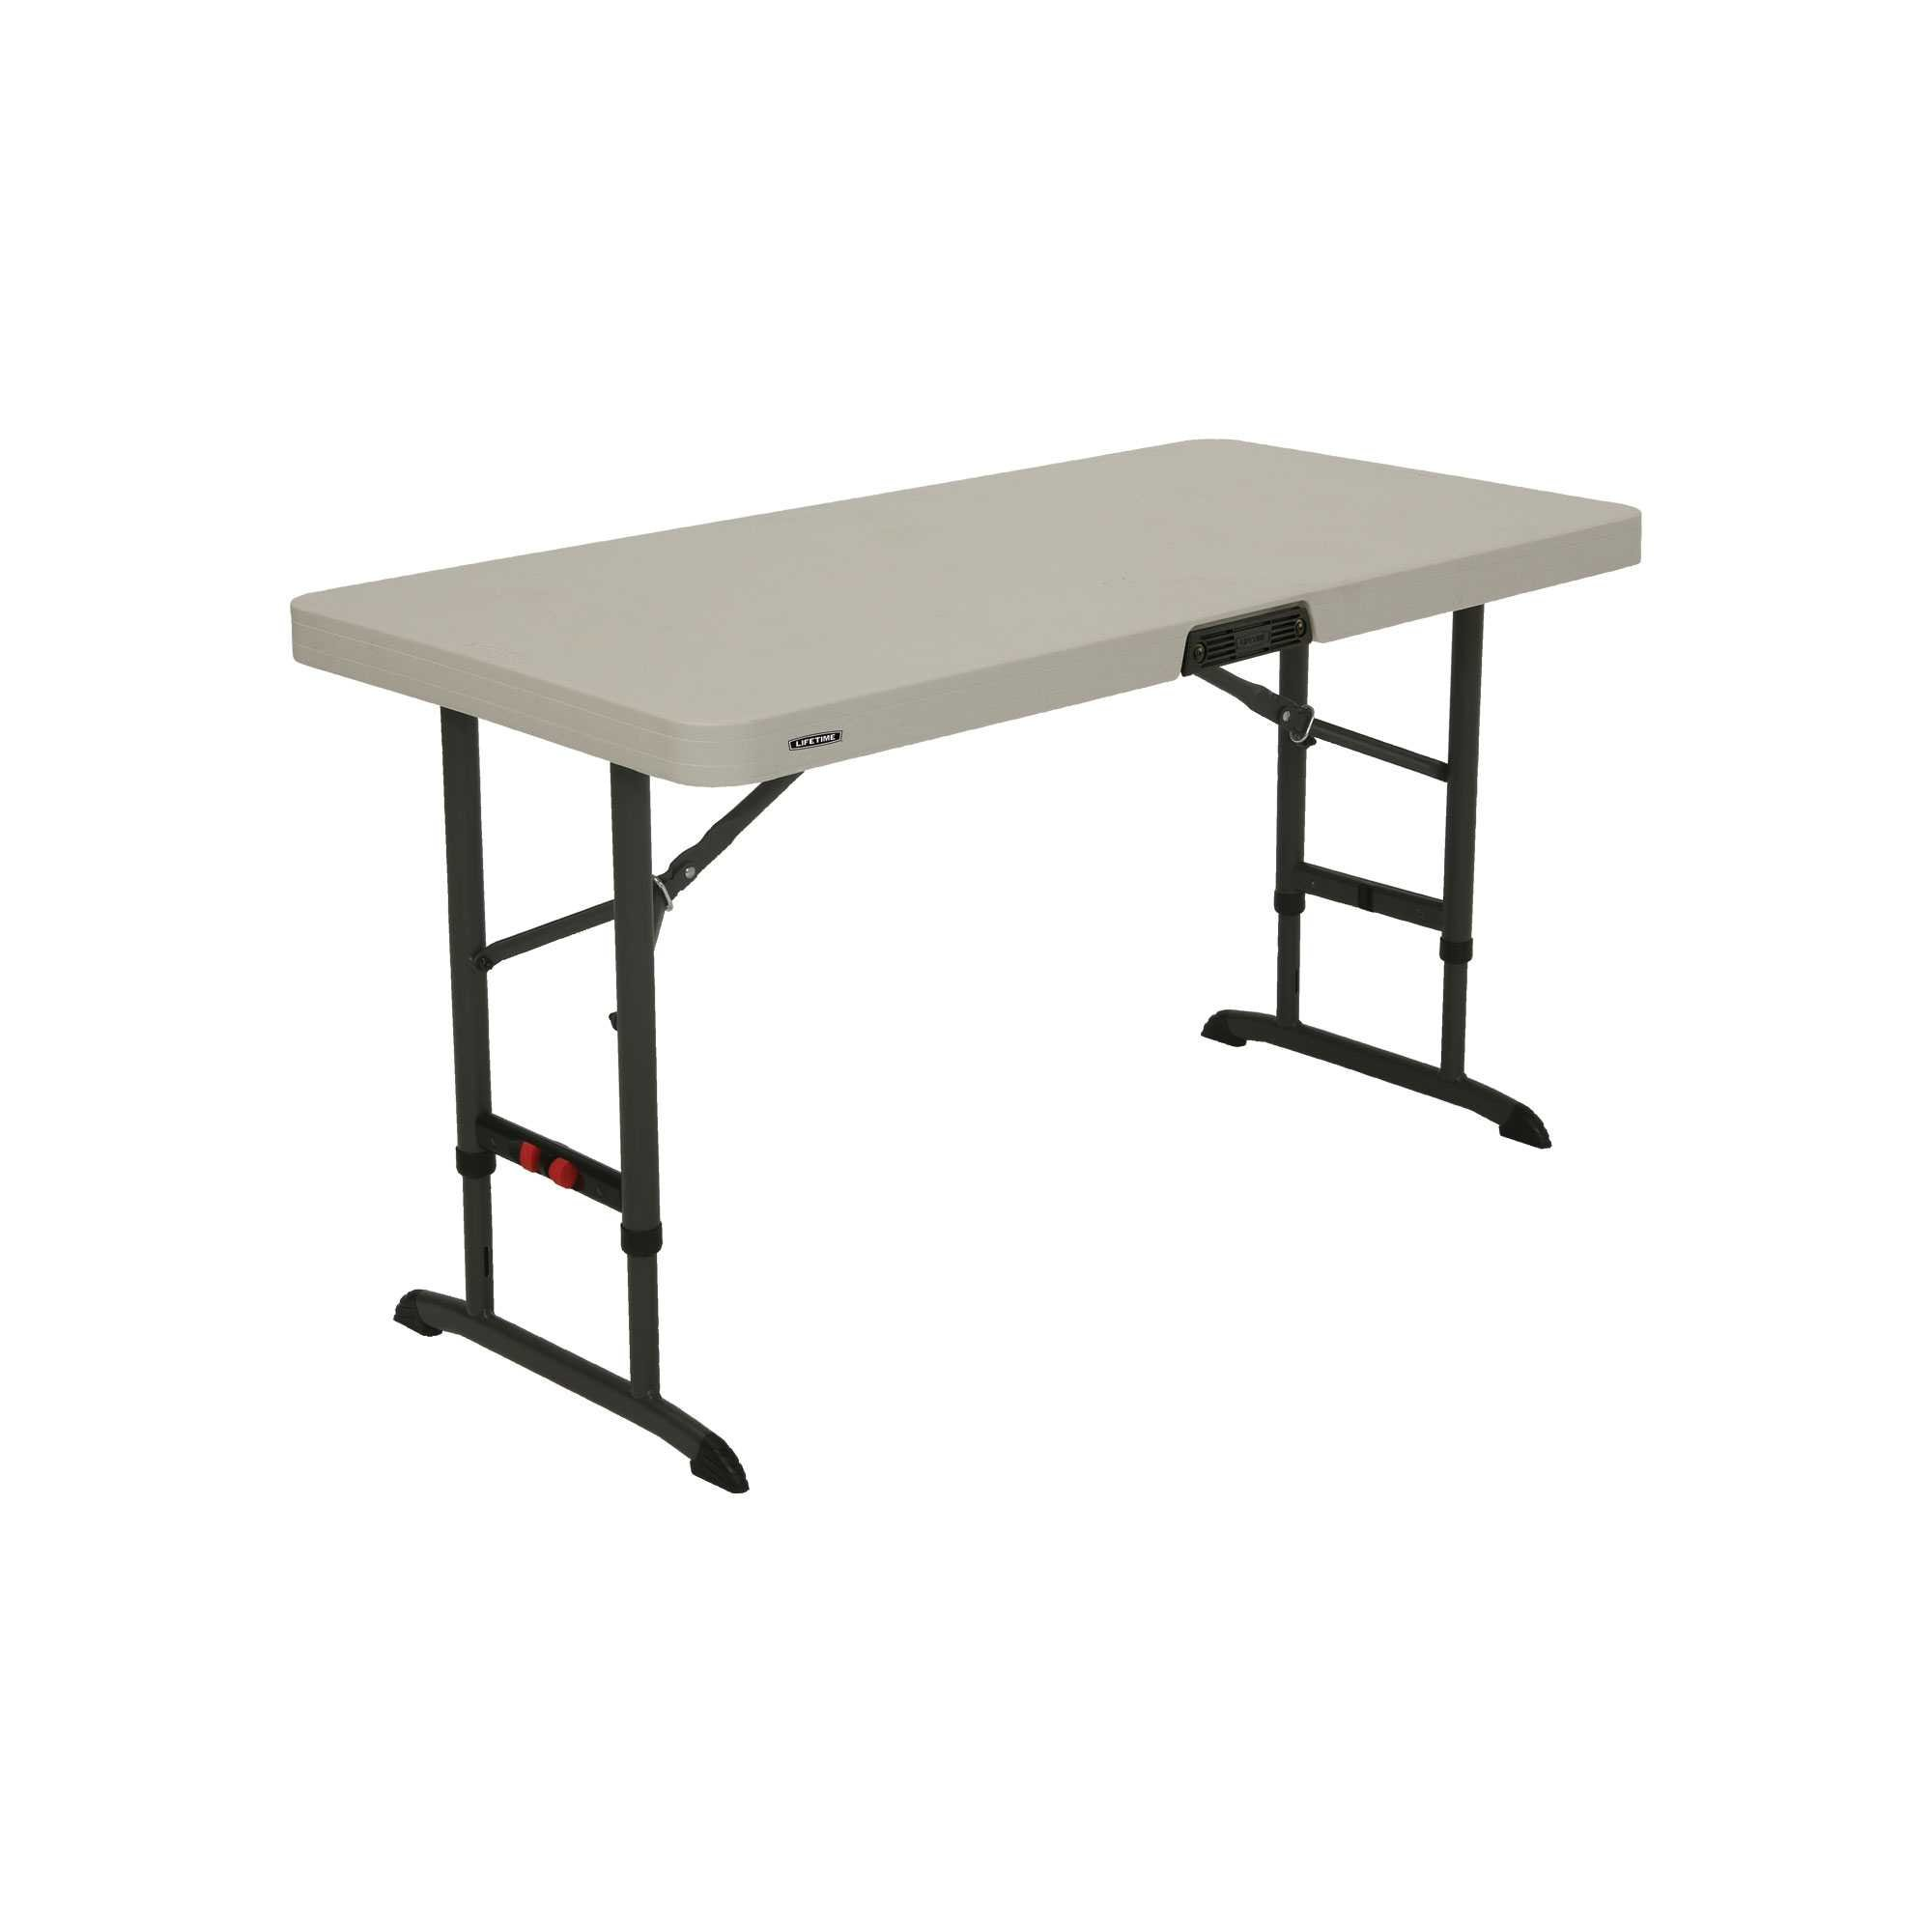 Lifetime Products 80387 4-Foot Commercial Adjustable Folding Table, Almond by Lifetime Products